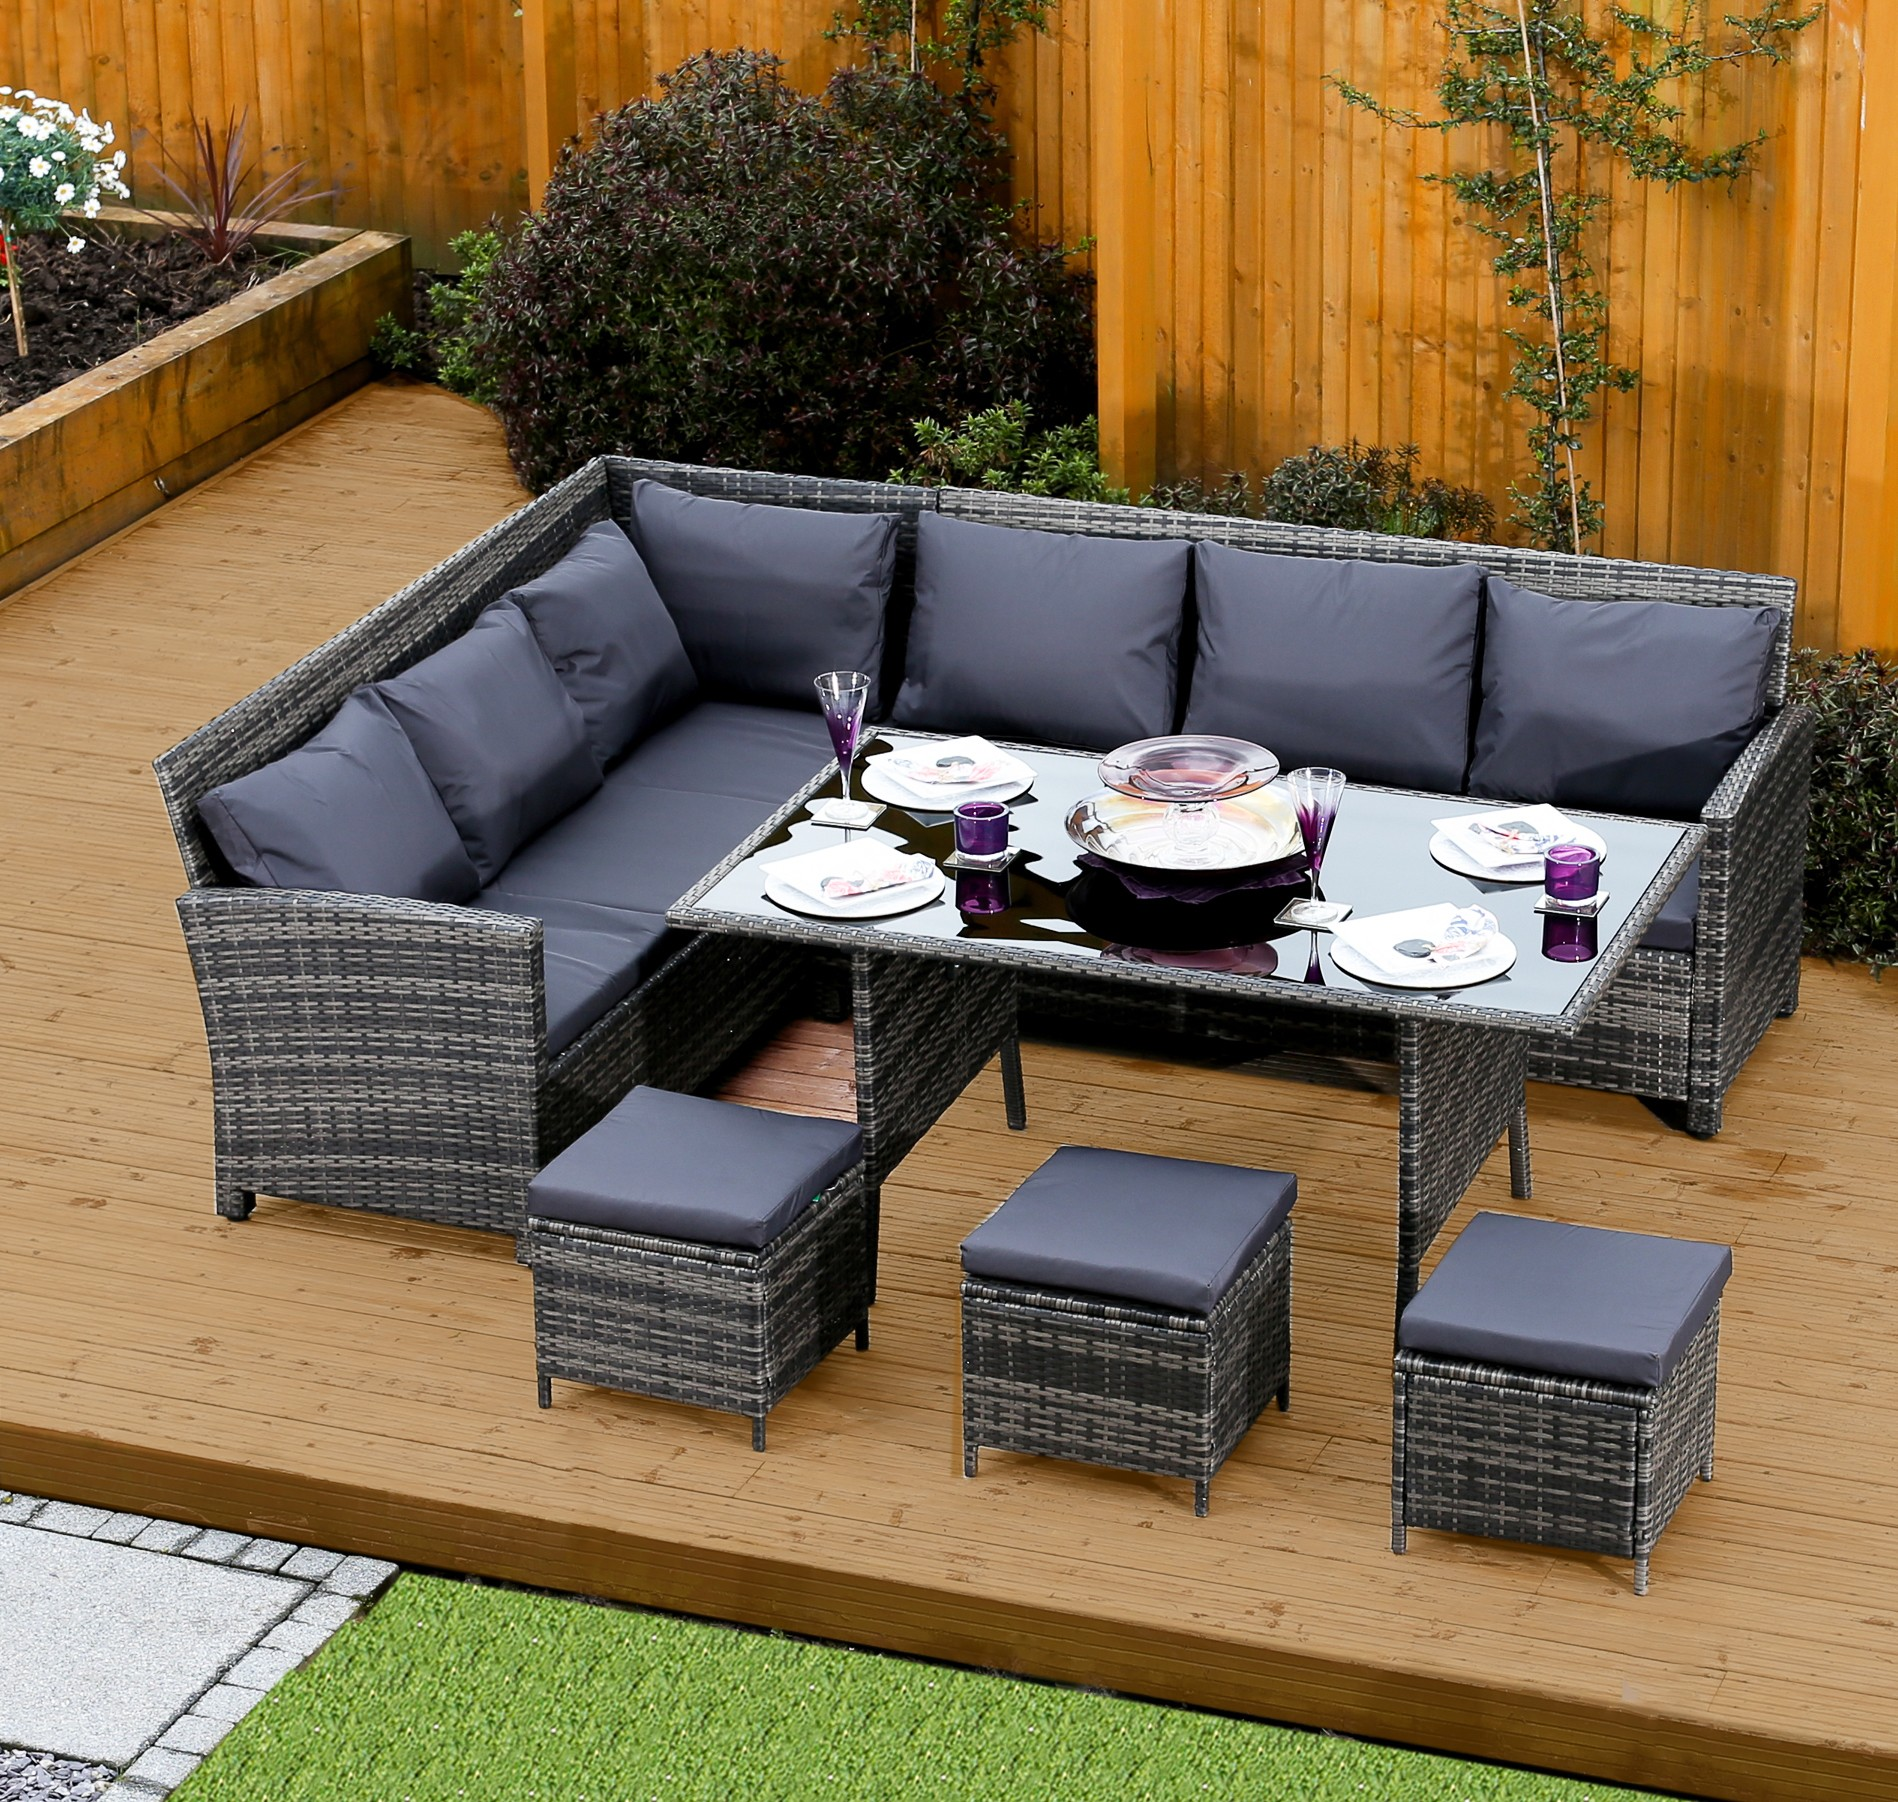 Sensational 9 Seater Rattan Corner Garden Sofa Dining Table Set In Dark Mixed Grey With Dark Cushions Interior Design Ideas Gentotryabchikinfo